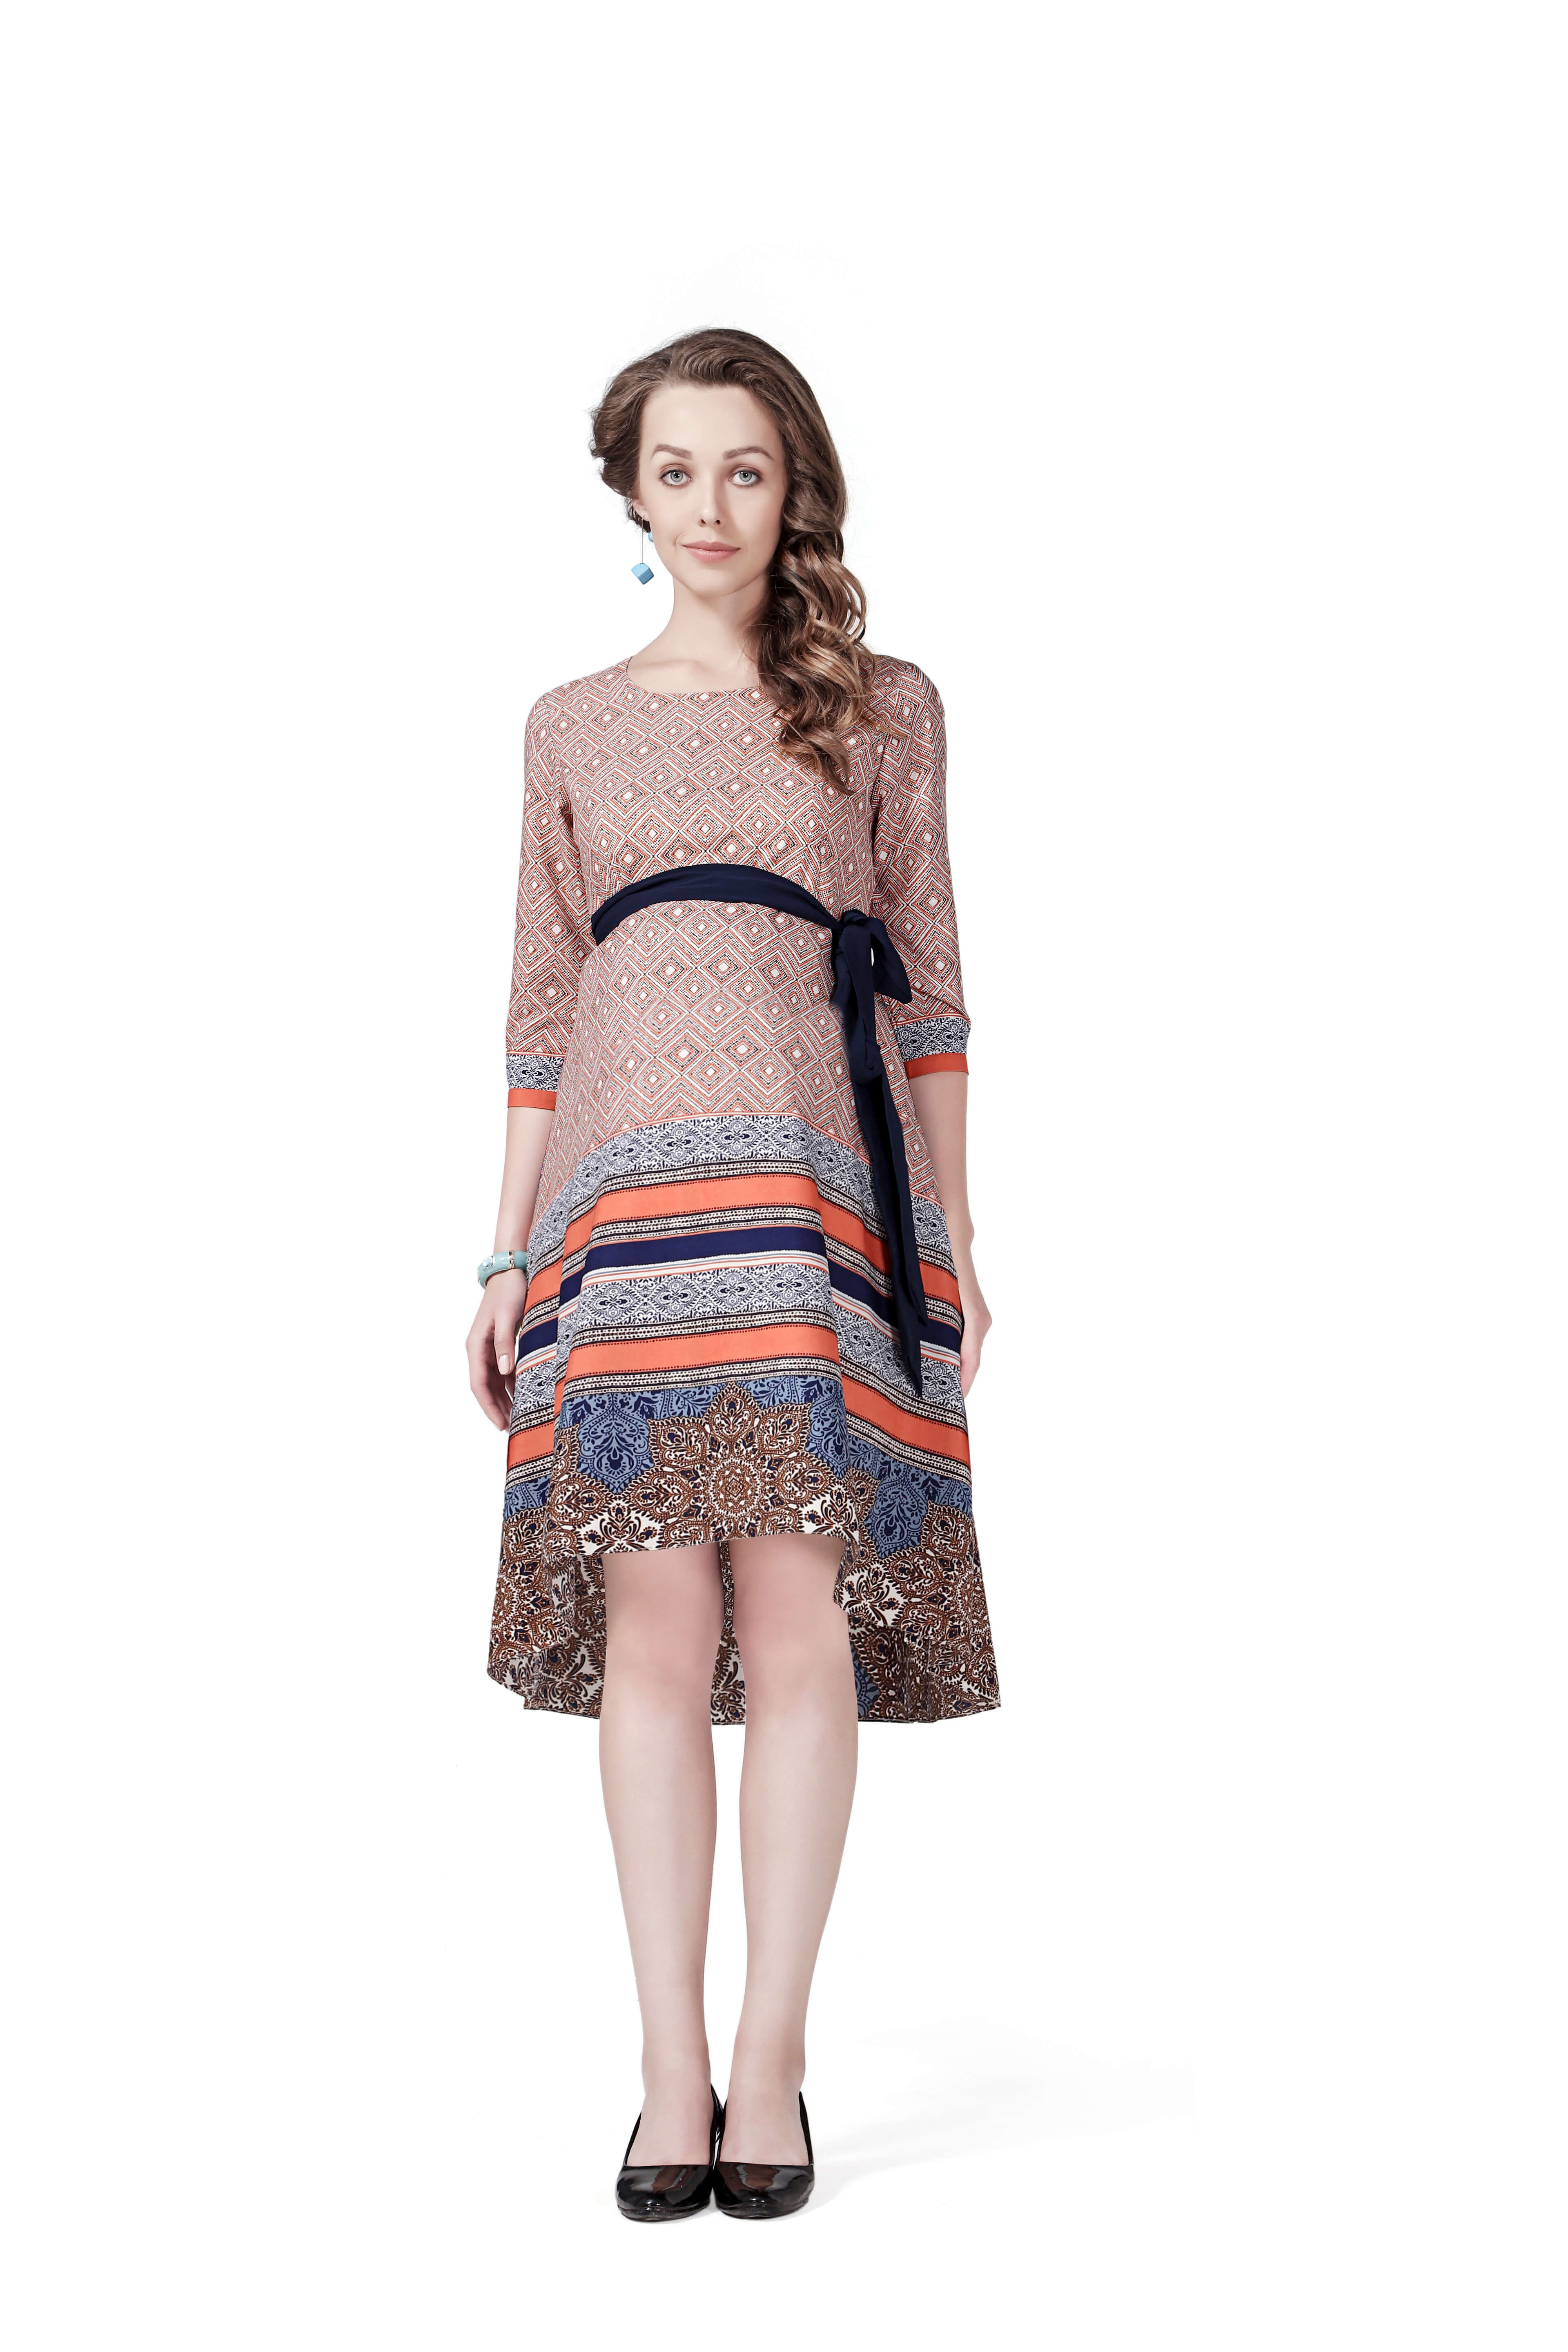 House of napius maternity casual dress maternity clothes house of napius maternity casual dress ombrellifo Image collections